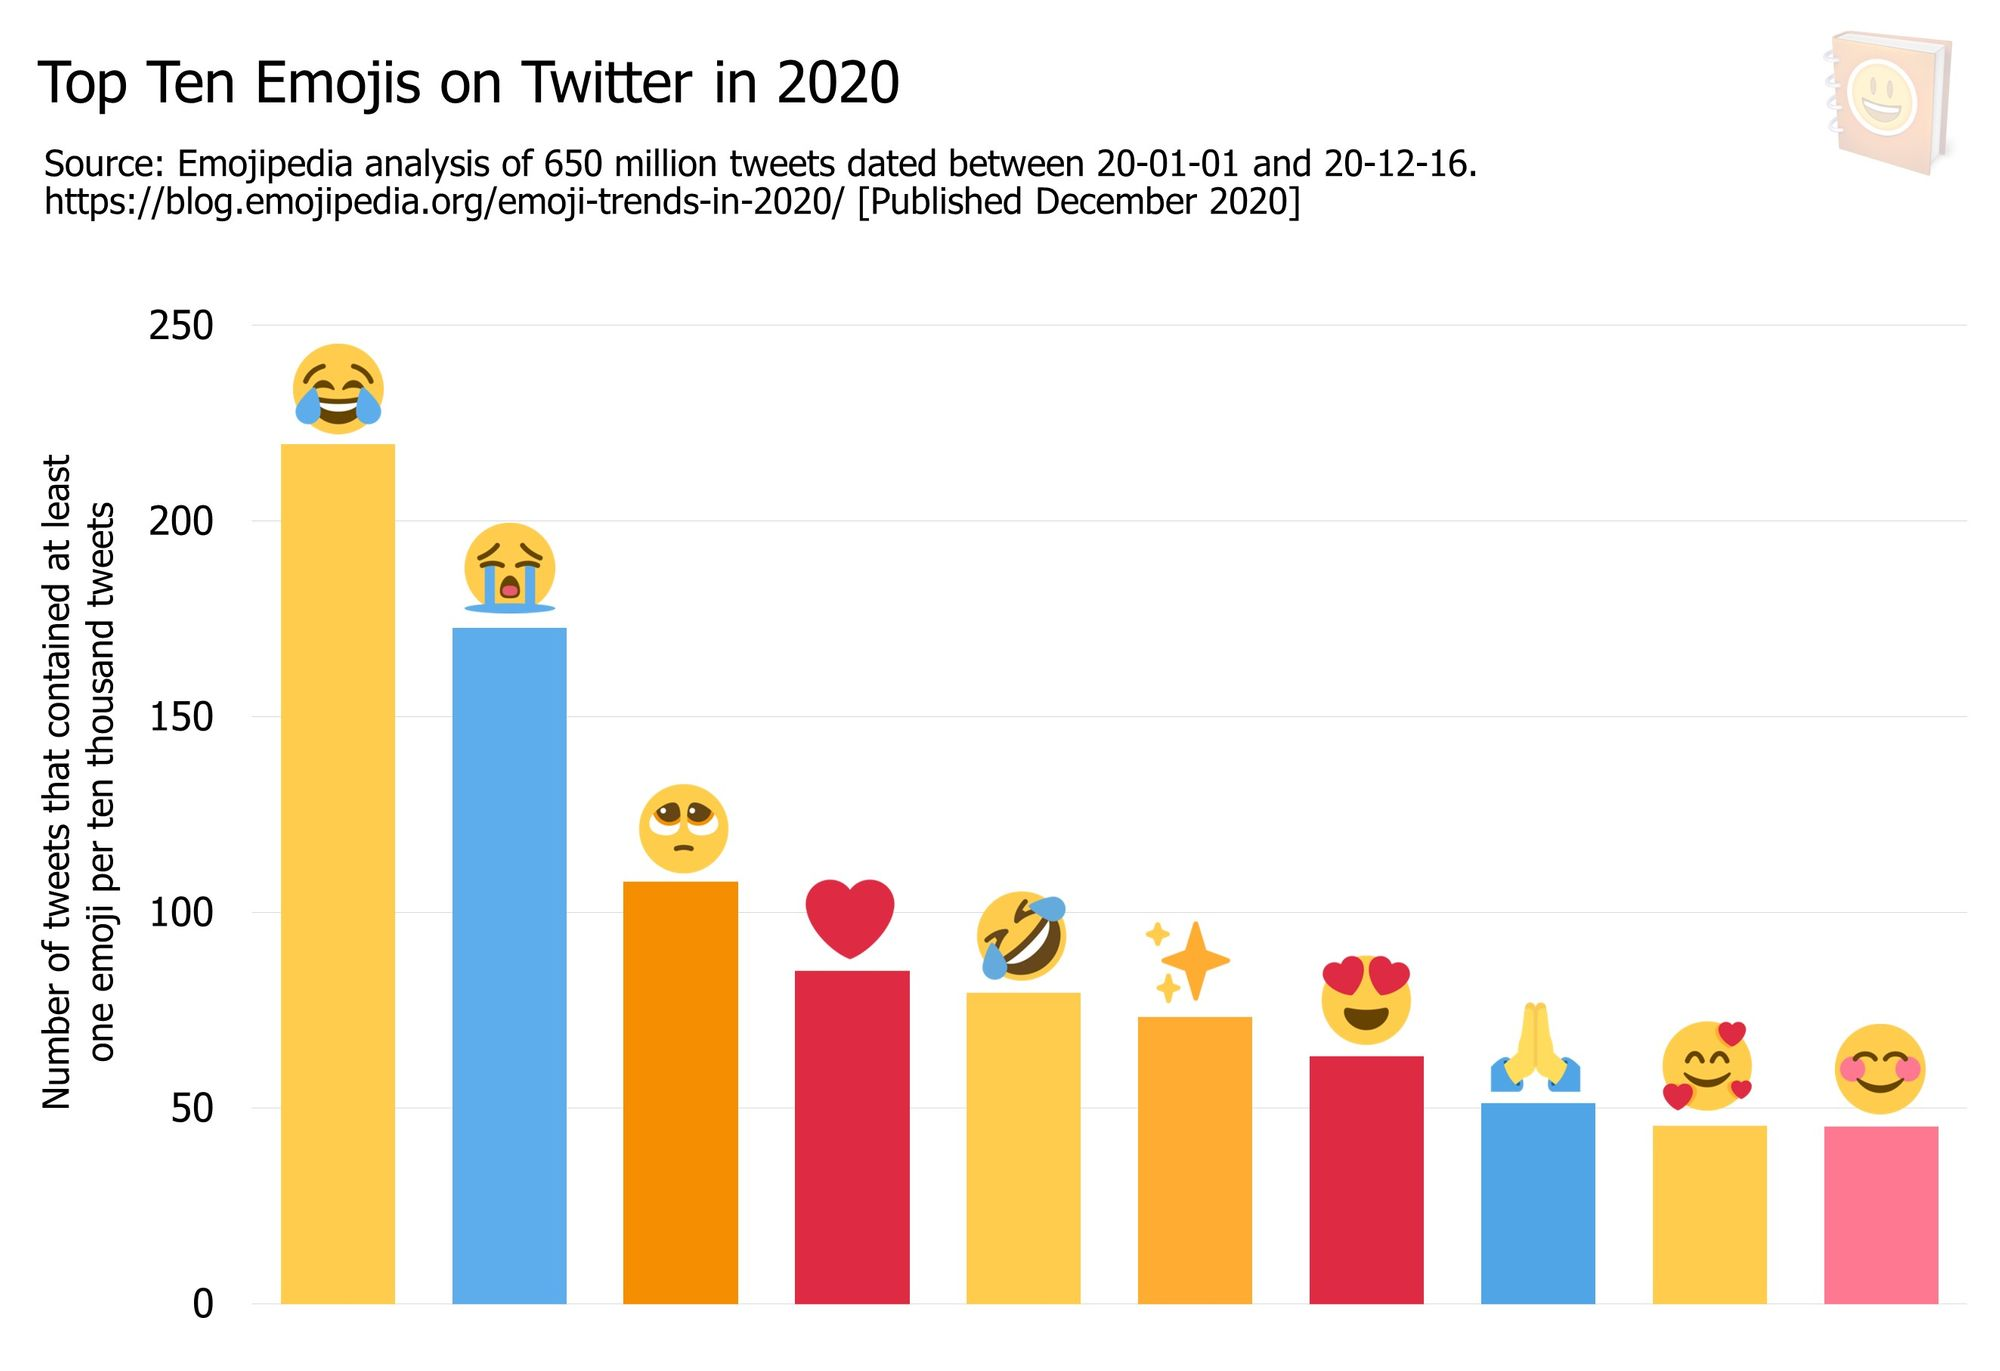 Emoji-Trends-In-2020---Top-Ten-Emojis-on-Twitter-in-2020-1